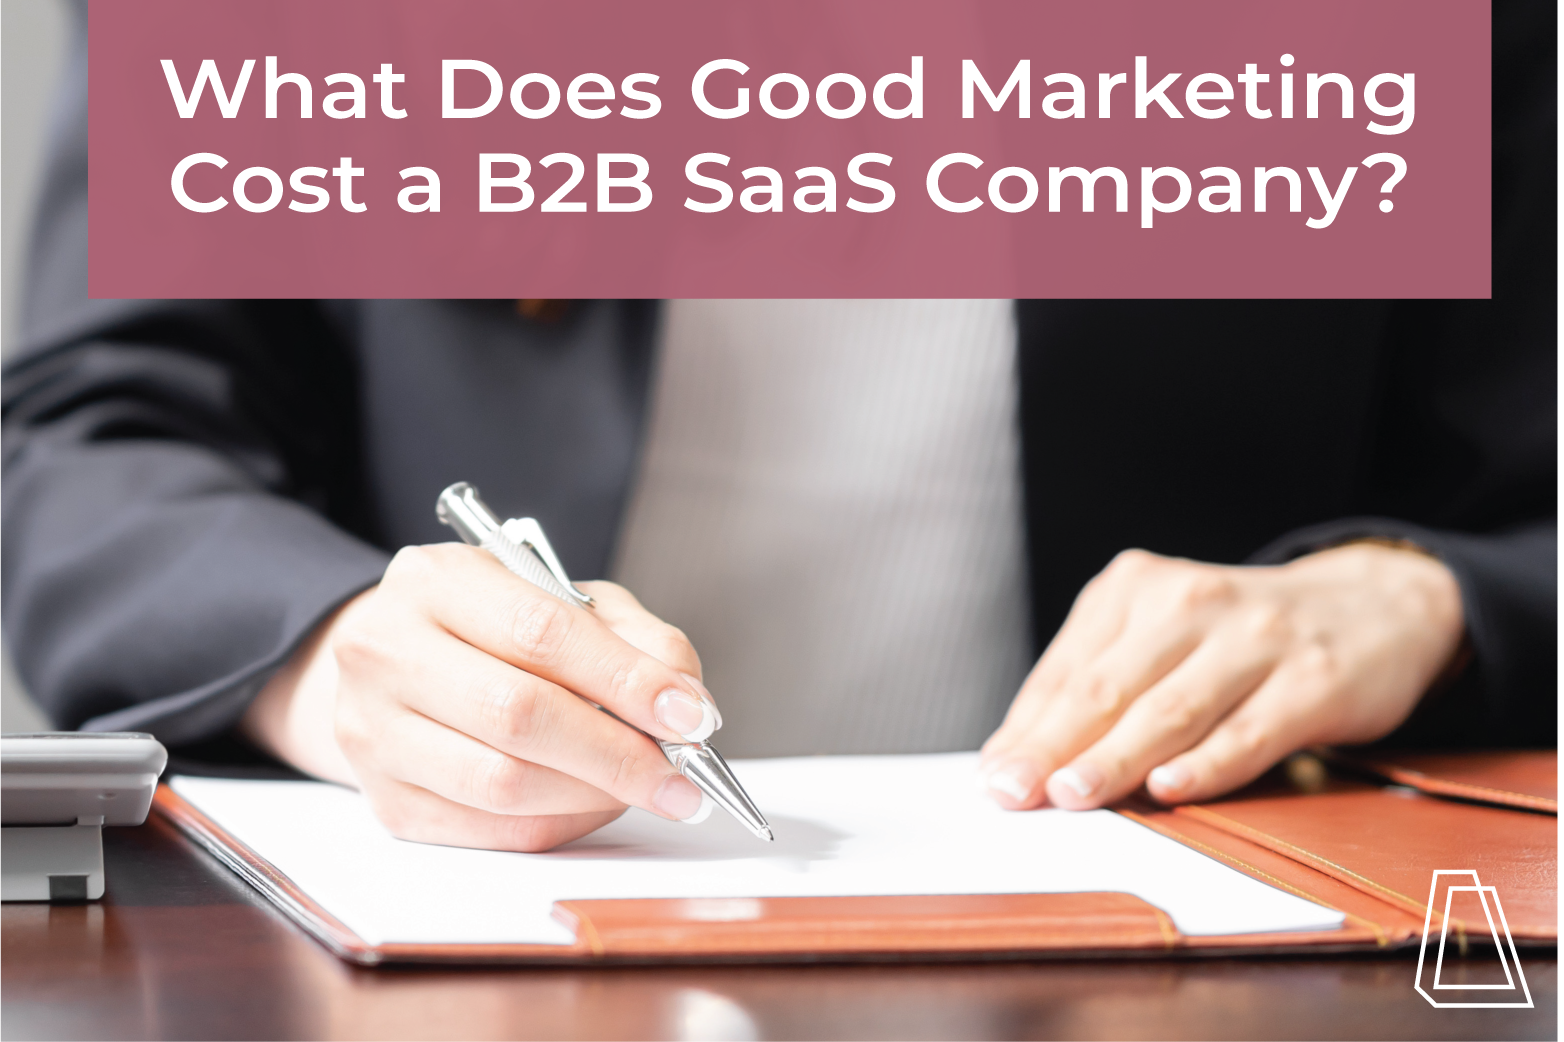 What Does Good Marketing Cost a B2B SaaS Company?